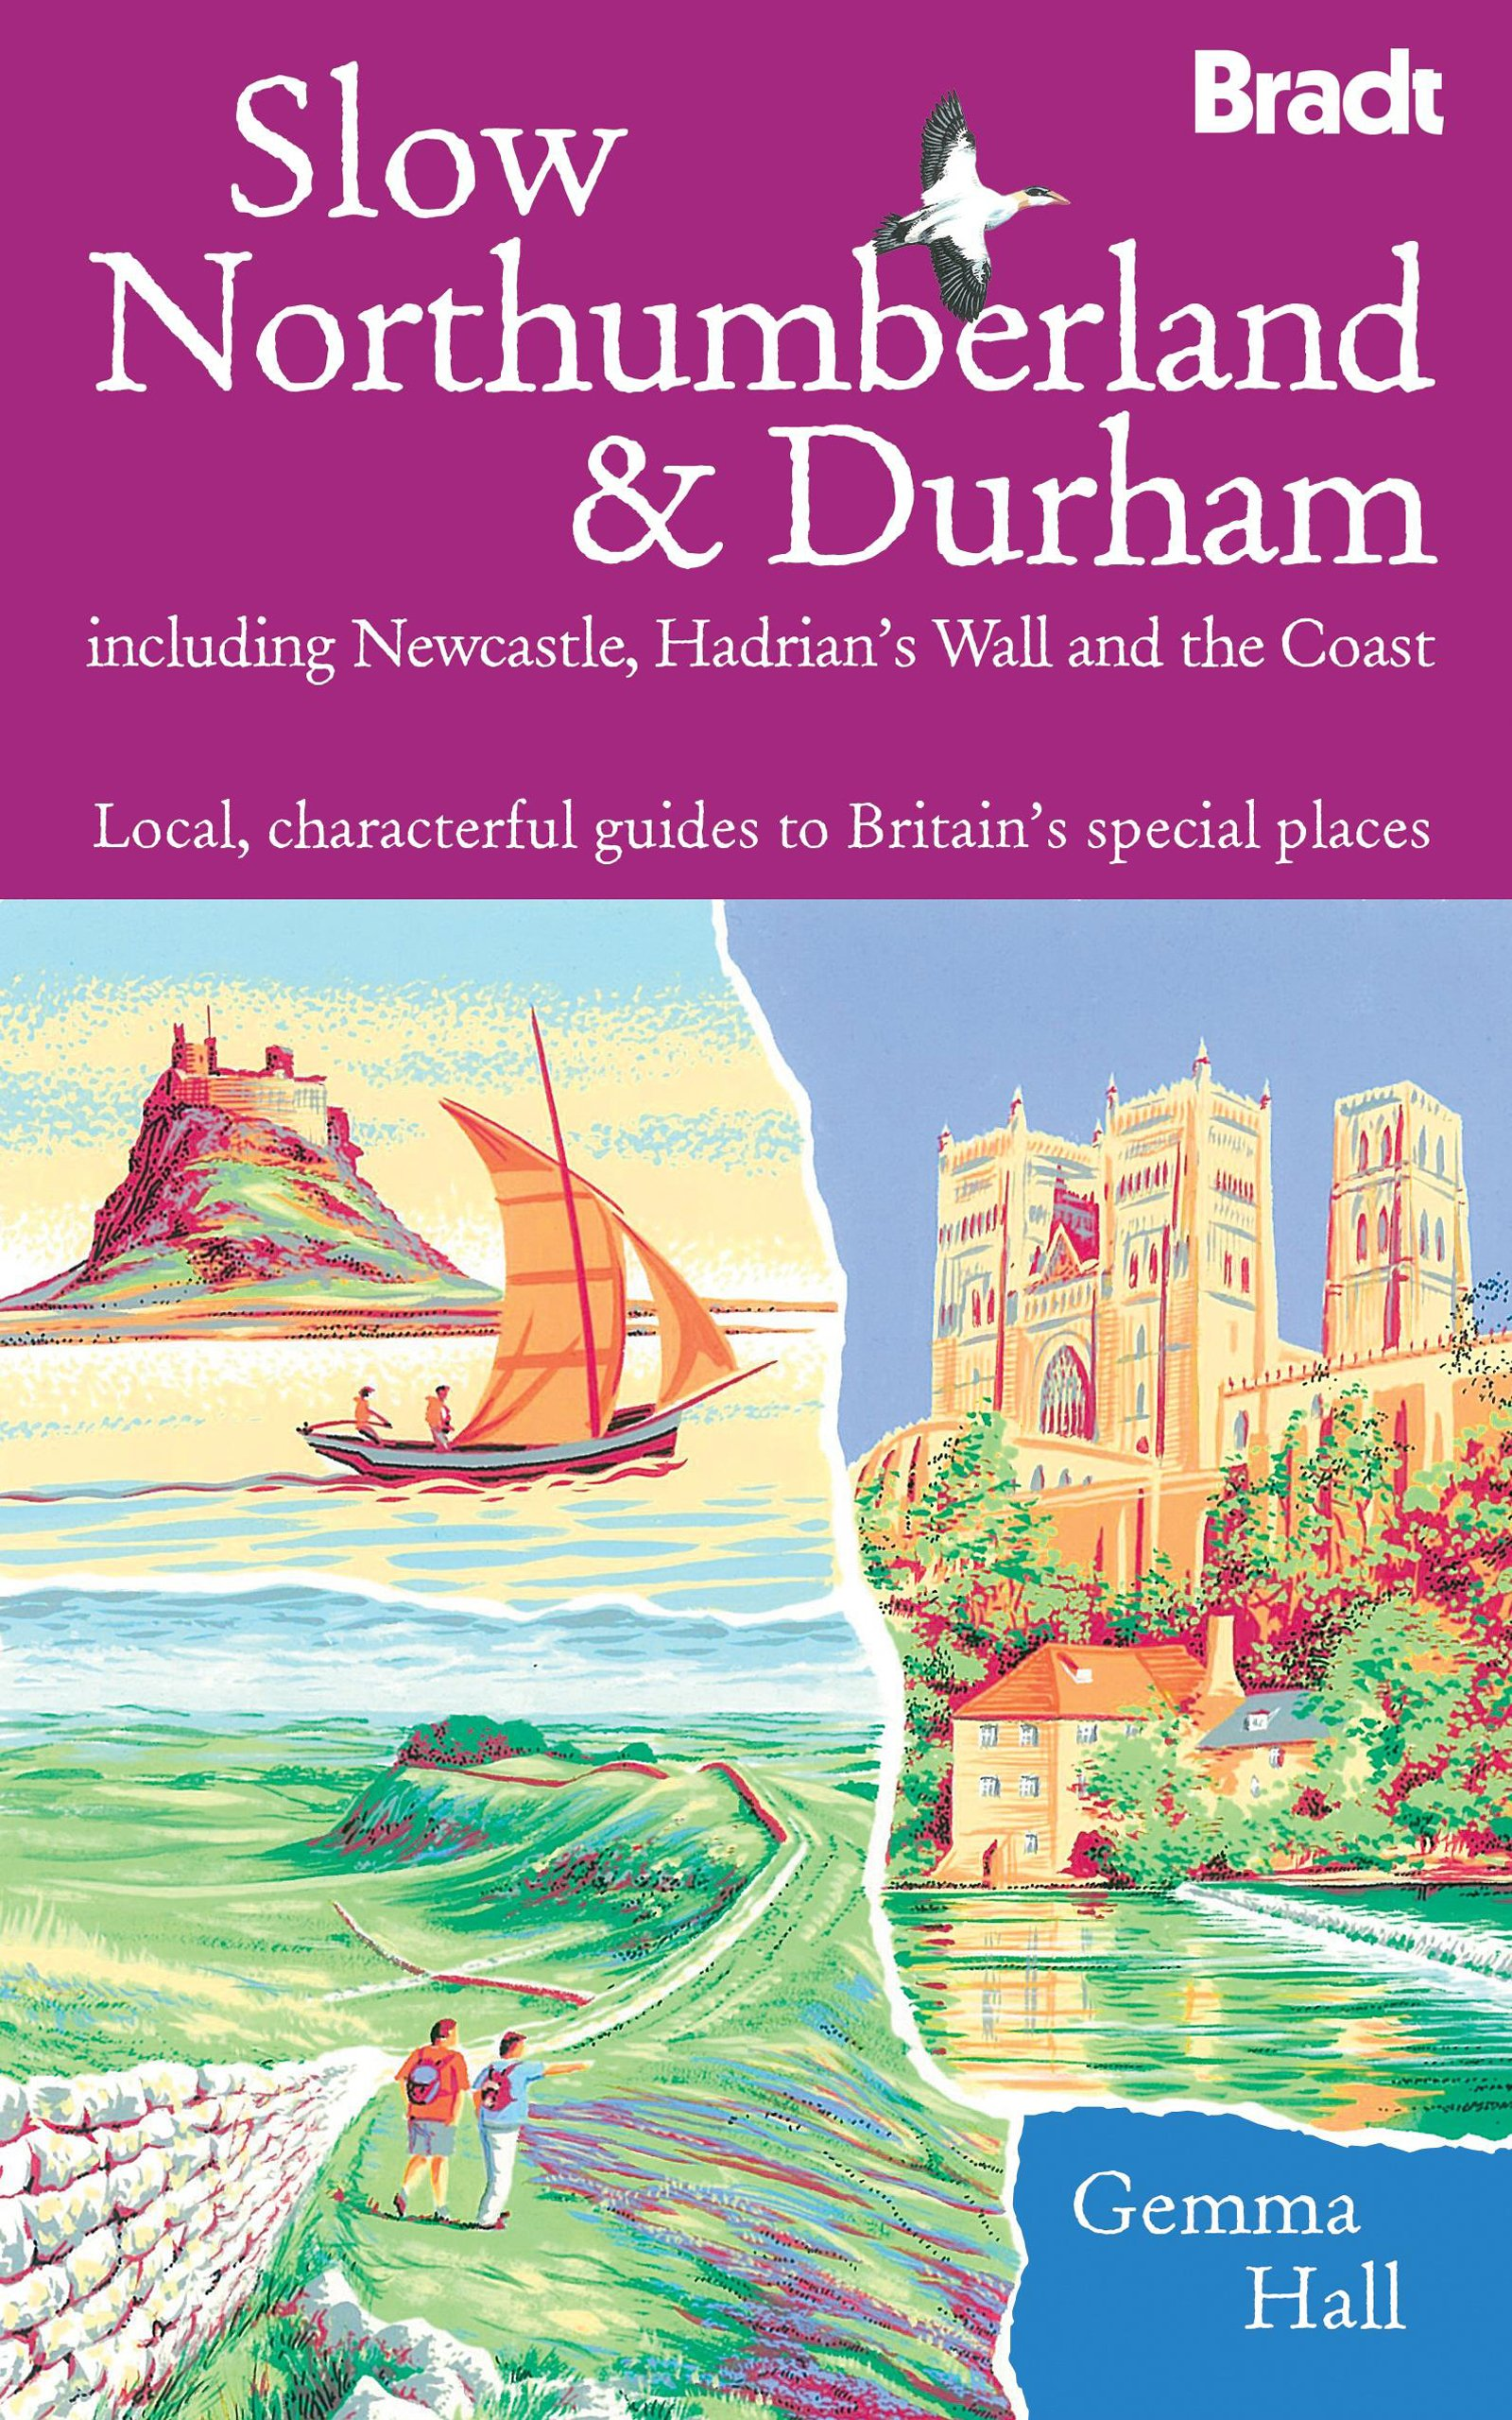 Download Slow Northumberland & Durham: Including Newcastle, Hadrian's Wall and the Coast (Bradt Slow Travel) pdf